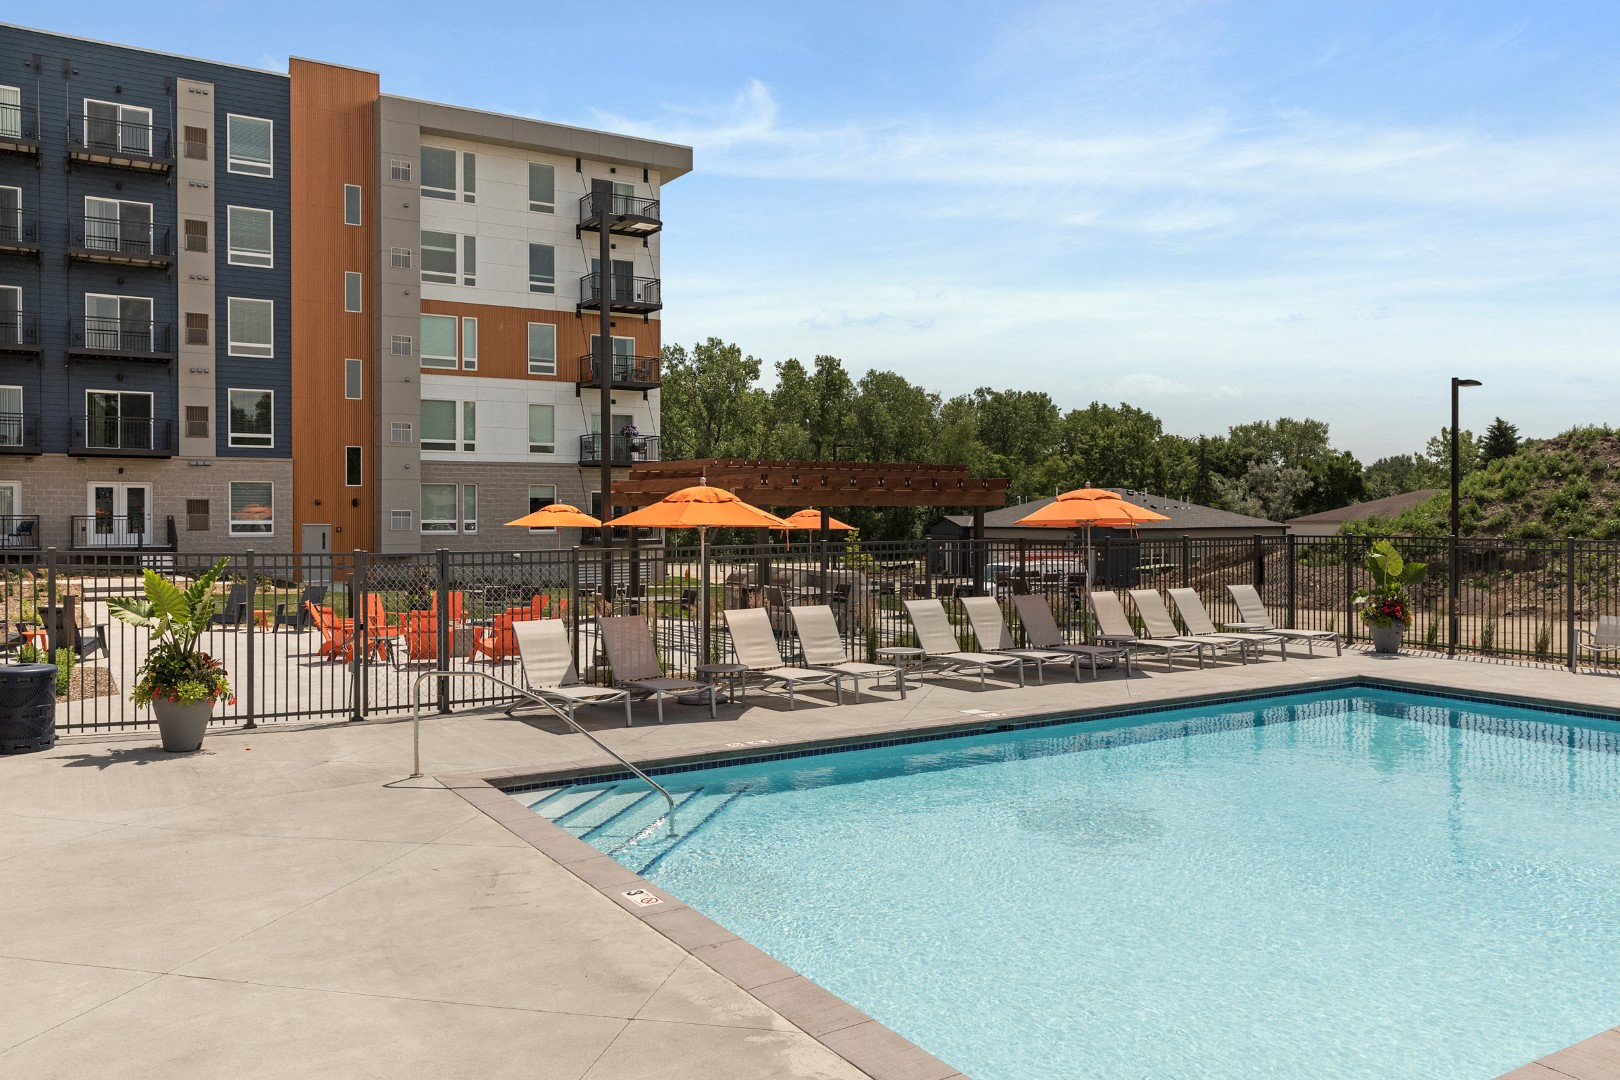 swimming pool at the liberty apartments and townhomes in golden valley minnesota